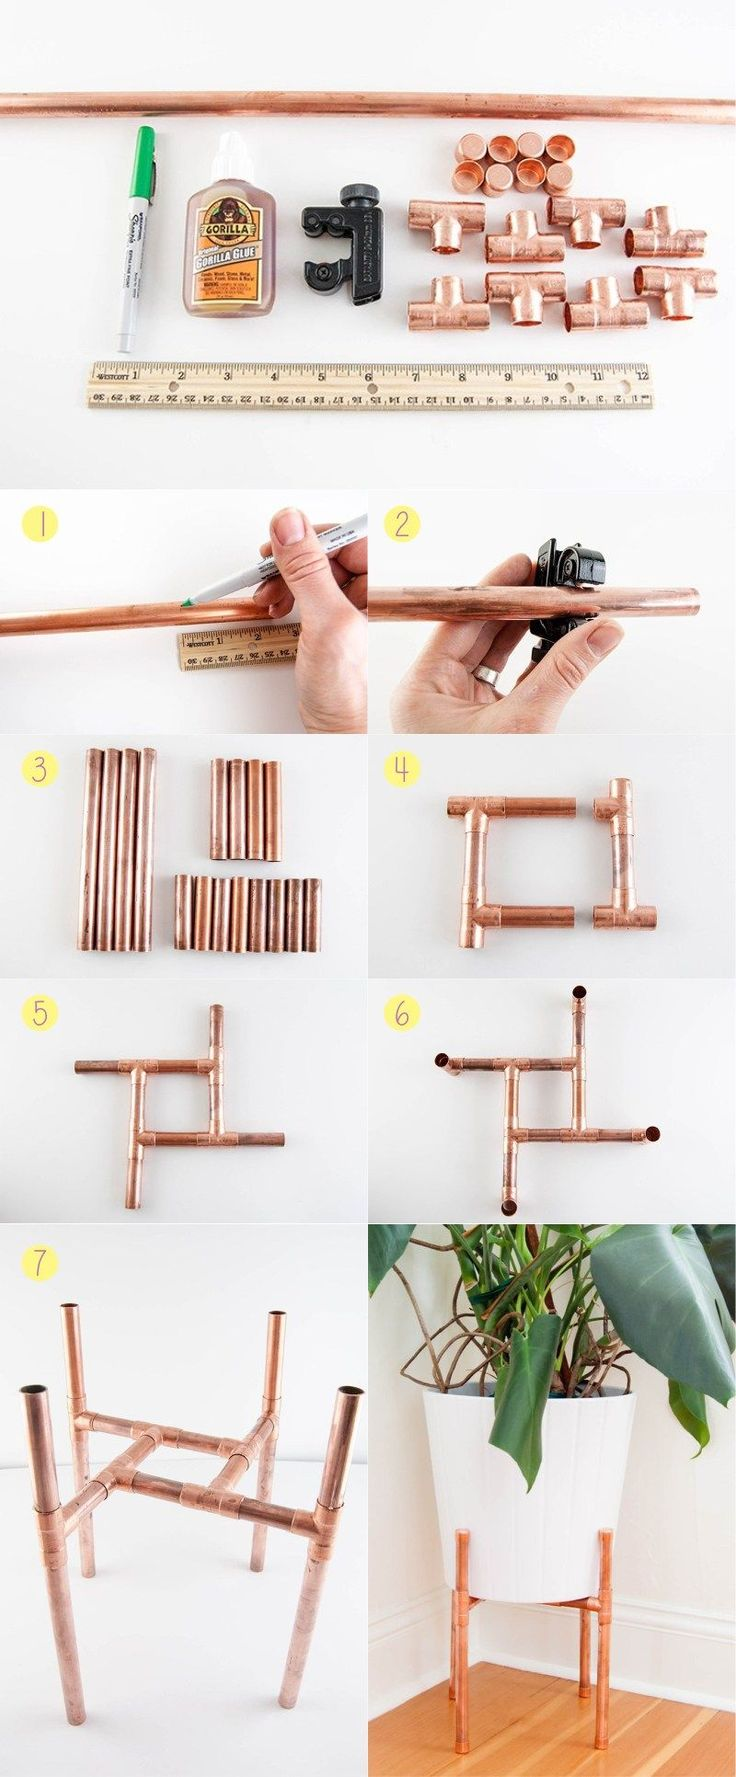 DIY Using Copper Pipes